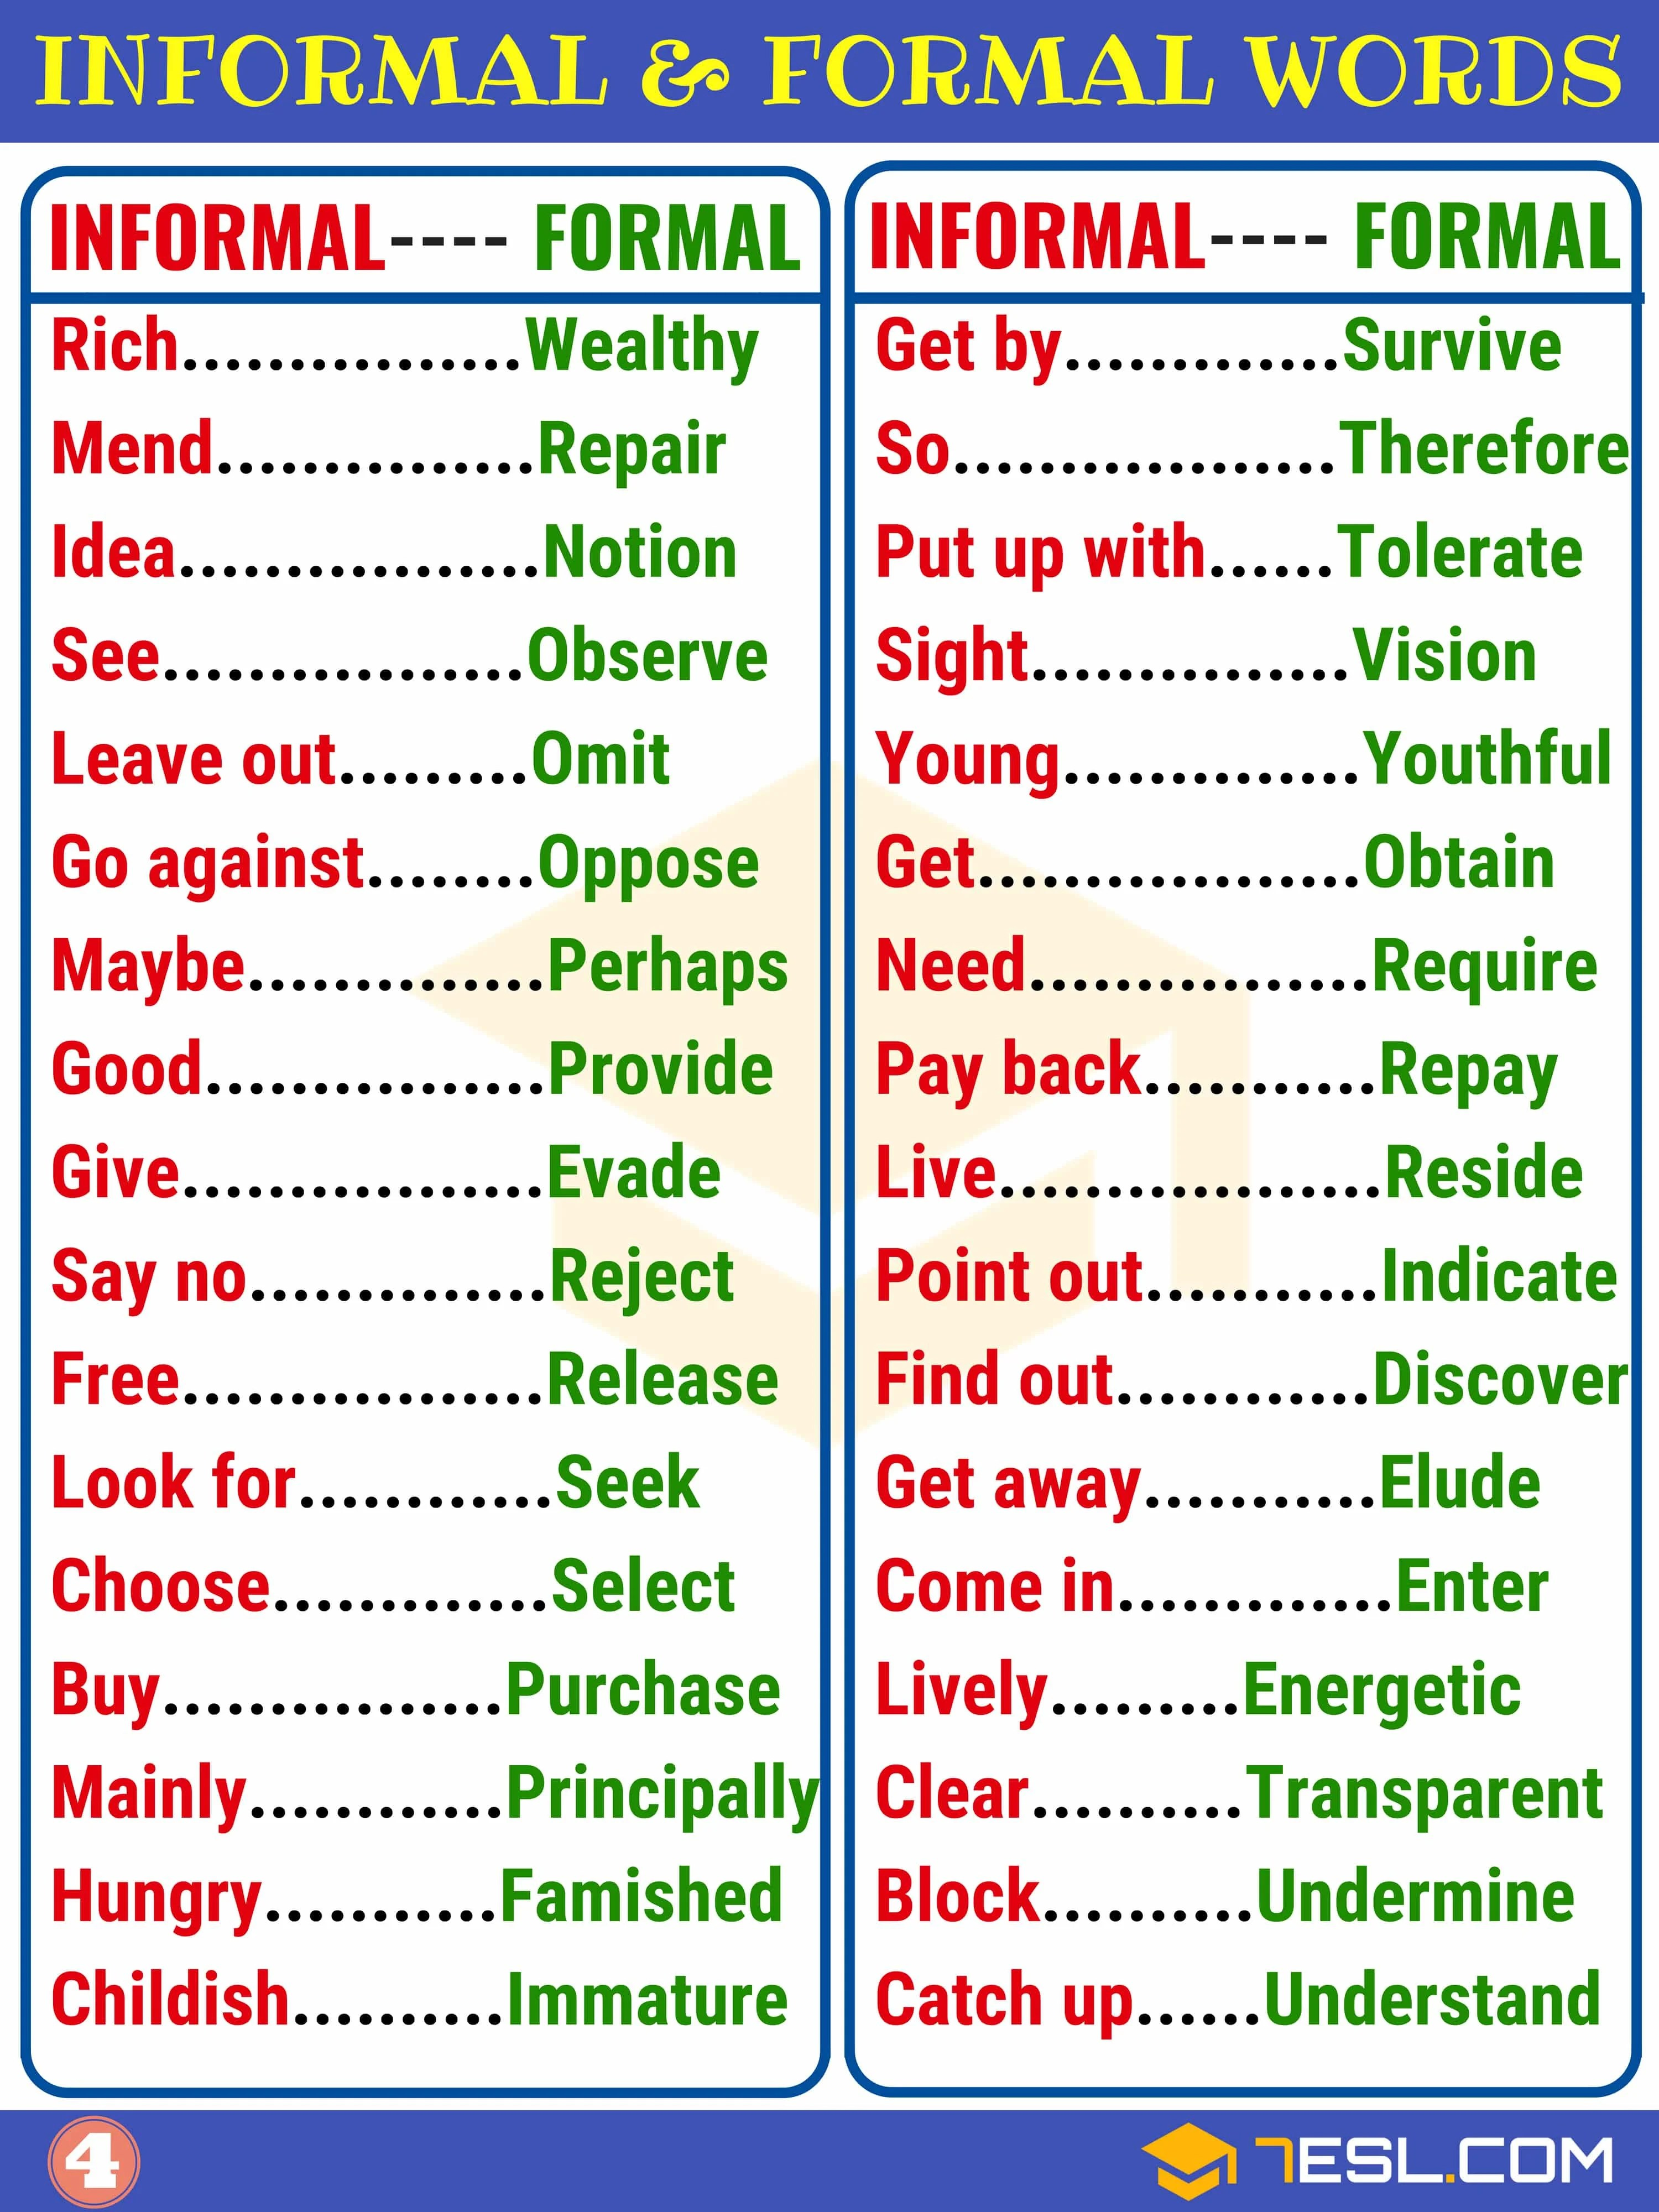 400 Useful Formal And Informal Words In English